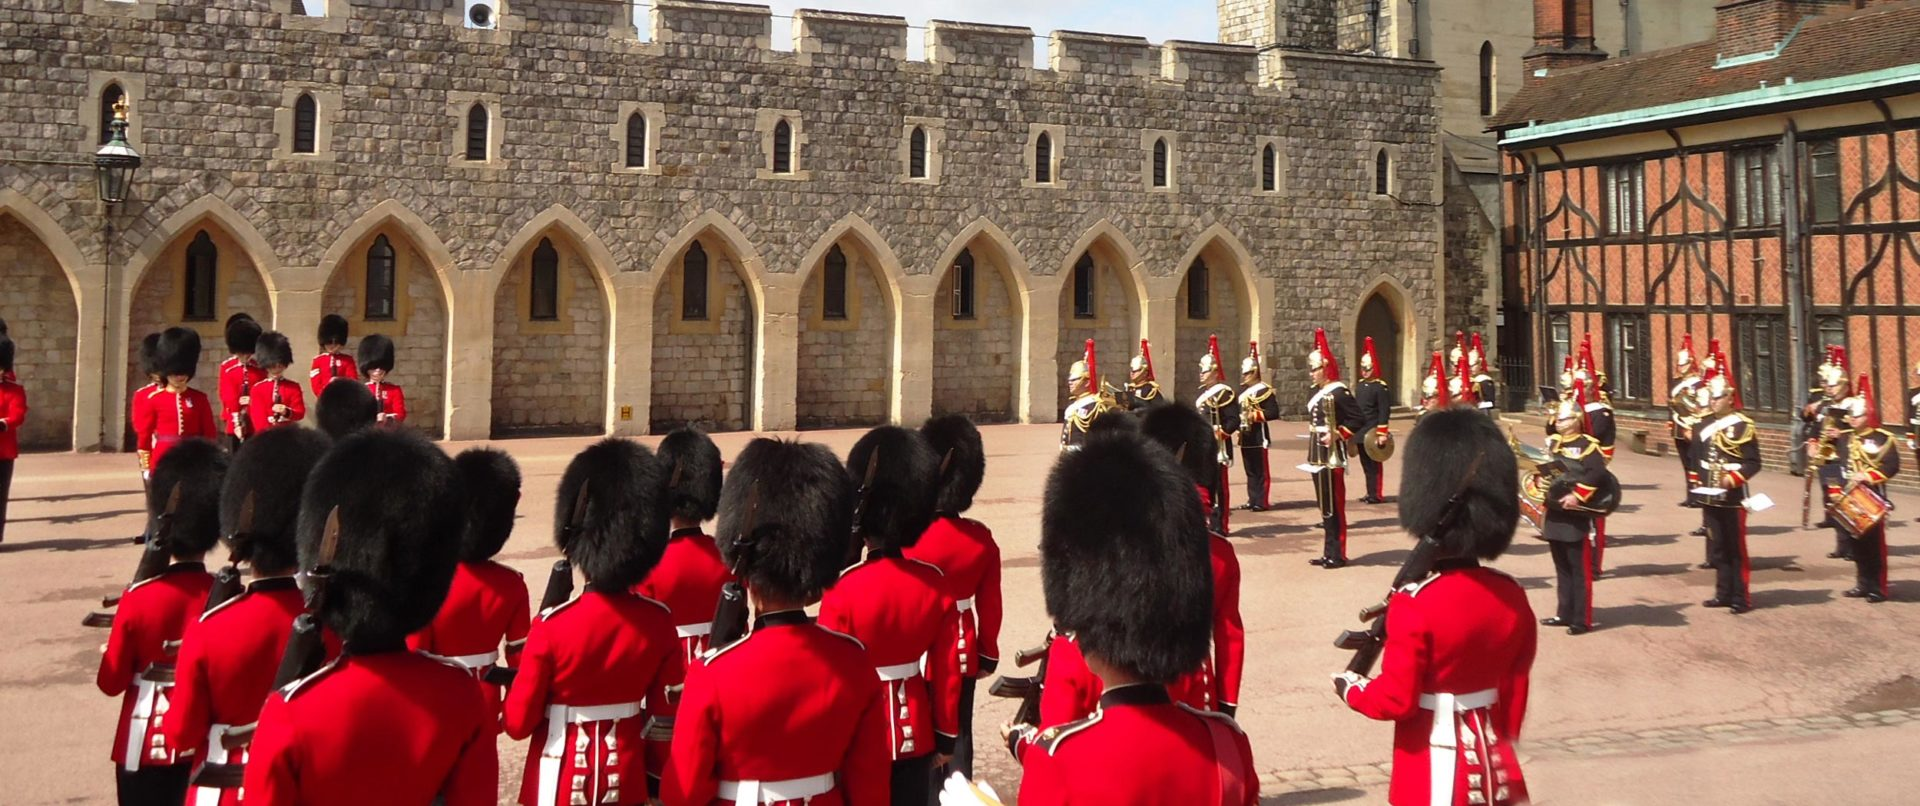 stonehenge-and-windsor-castle-guards